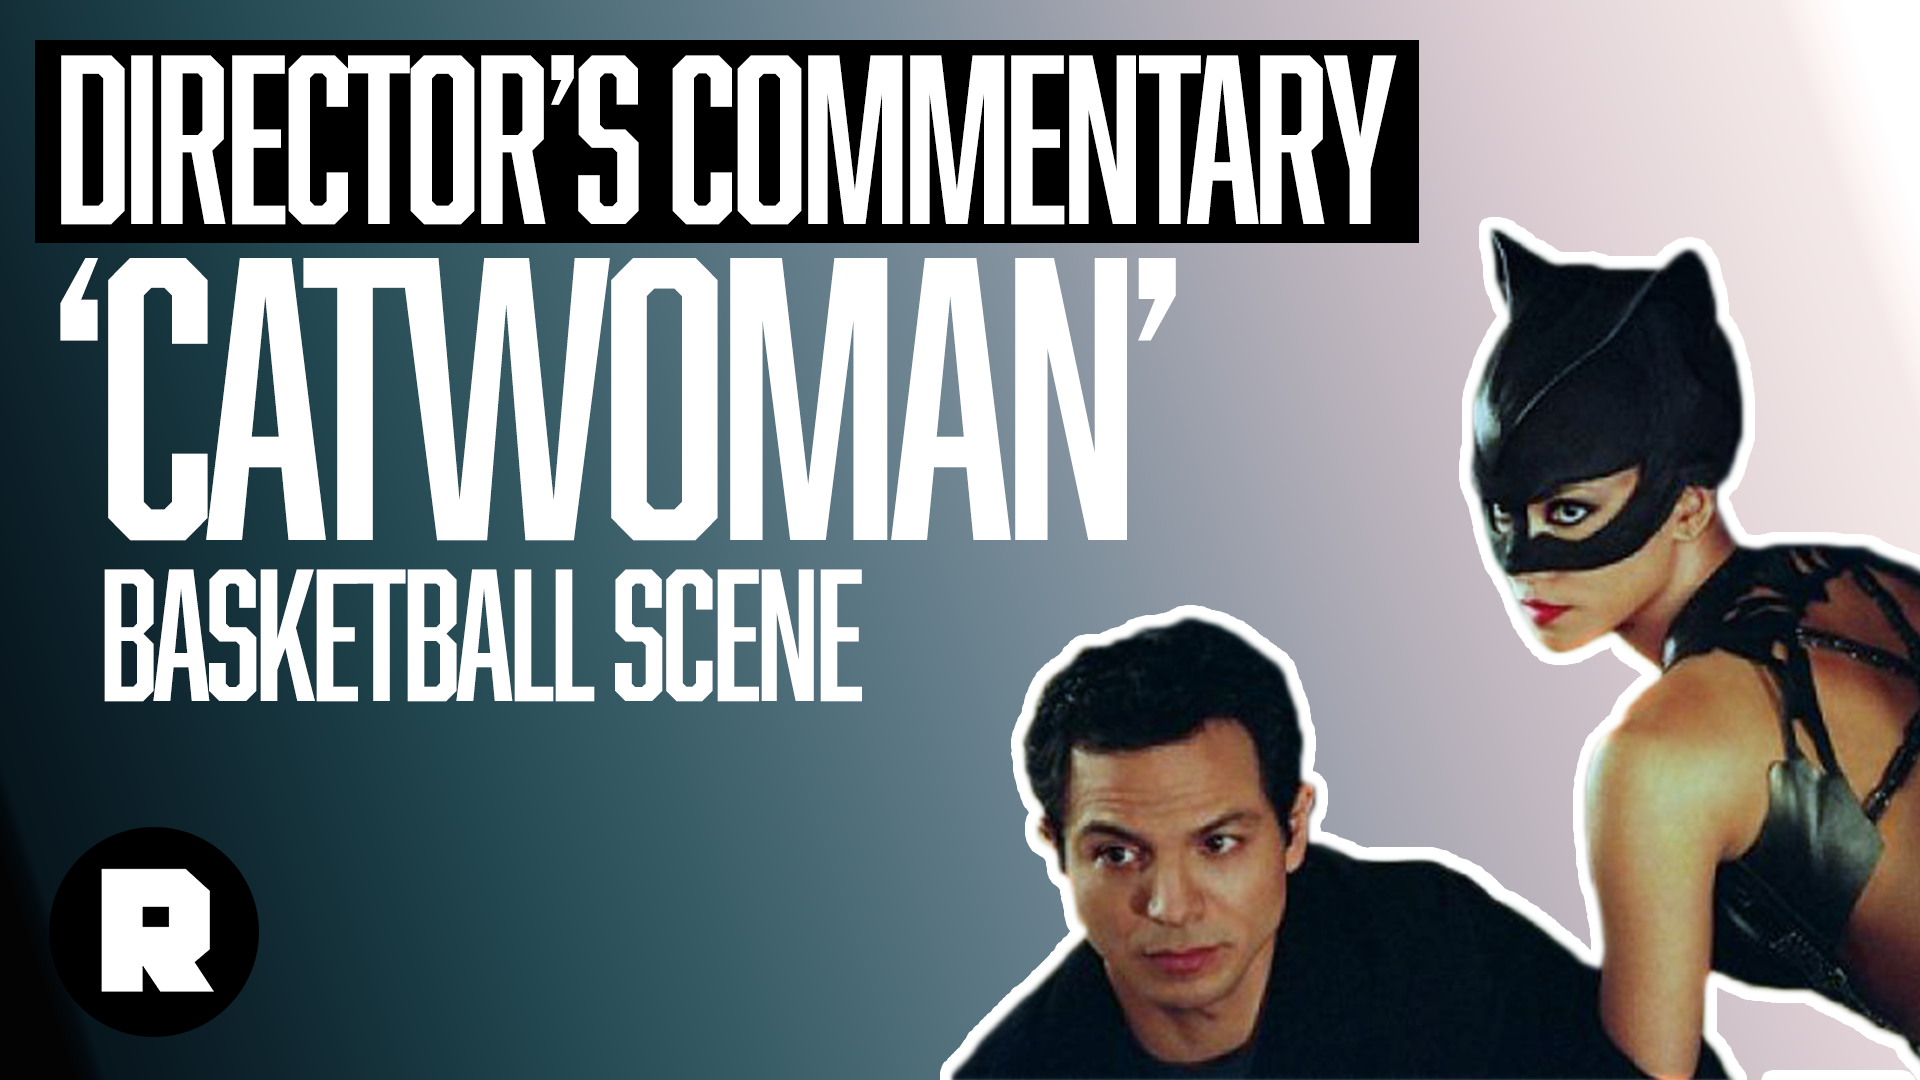 Director's Commentary: 'Catwoman' basketball scene